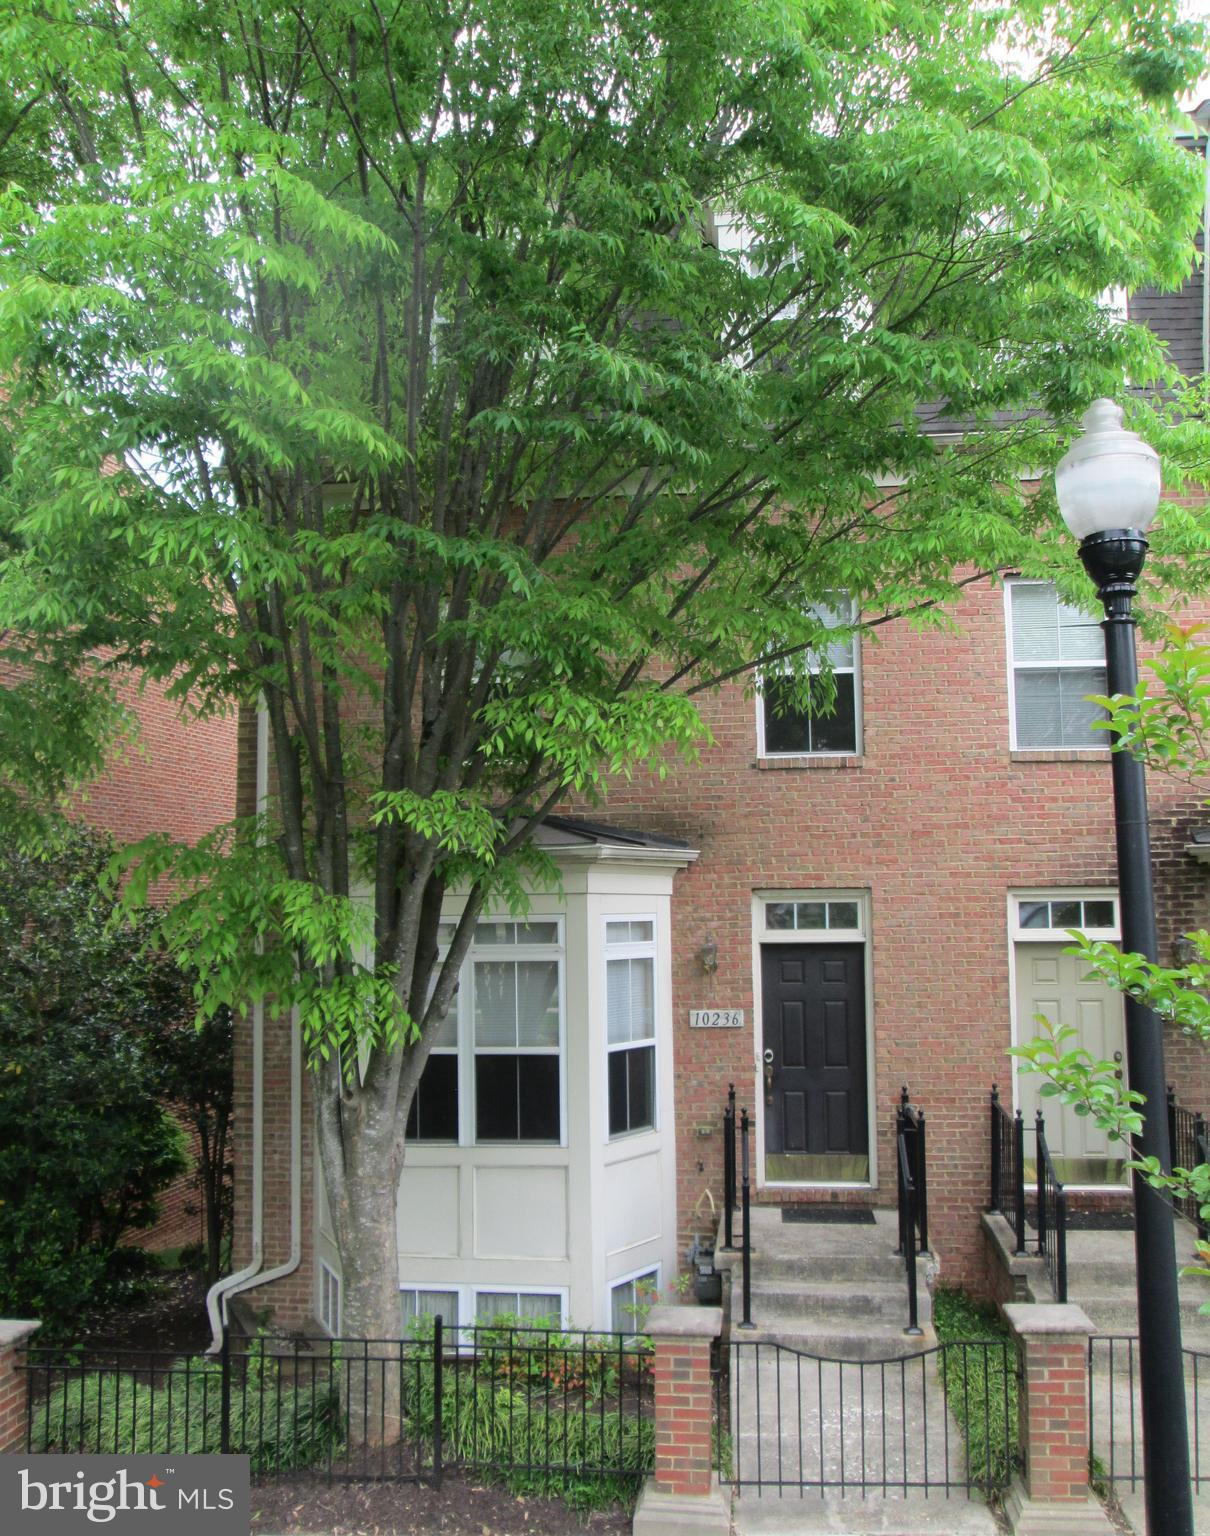 """Open House 12pm-2pm Saturday May 8th!!!  Tremendous location just off the mall!  This 4 level 2-car garage end unit  townhouse has a gourmet kitchen and hardwood flooring throughout the main level and the upper level hallway.  The main level features a living room - dining room combination and a kitchen that basks in natural light and also has a large island with breakfast bar, stainless steel appliances, including a gas stove, built-in microwave, dishwasher, and side by side refrigerator with water and ice in the door, hardwood flooring, maple cabinets with 42"""" uppers, a double sink and the kitchen flows into the main level family room with gas fireplace and rear """"morning room"""".  There is a balcony off the rear of the home on this level, too.  The hardwood staircase leads to the 1st upper level which houses 3 bedrooms including the primary bedroom with a soaring vaulted ceiling, walk-in closet and ensuite super bath.  Your private bath has dual sinks, a deep whirlpool tub, and separate shower.  There are also 2 other bedrooms and a full """"hall"""" bathroom on this level.  Go upstairs to the 2nd upper level to the loft, which can be used as a 4th bedroom, an office, a library/study, a children's playroom, guest bedroom or whatever other purpose you might come up with.  The """"loft"""" is a great space and there is also has a half bathroom up there.   The home has 2 """"zones"""" for AC and heat, both with gas furnaces ... so the 2 upper floors and the 2 lower floors have separate  thermostats for better efficiency and better temperature regulation throughout the home.  The lower level has a recreation room, a half bath and the laundry room.  Interest rates are great and this 2-car garage townhome in the heart of Town Center is a great place to live.  Easy access to shopping, jogging/walking trails, lakes and other outdoor recreational activities including concerts at Merriweather, the movie theater and restaurants at the mall.   Community fees include yard maintenance, snow remova"""